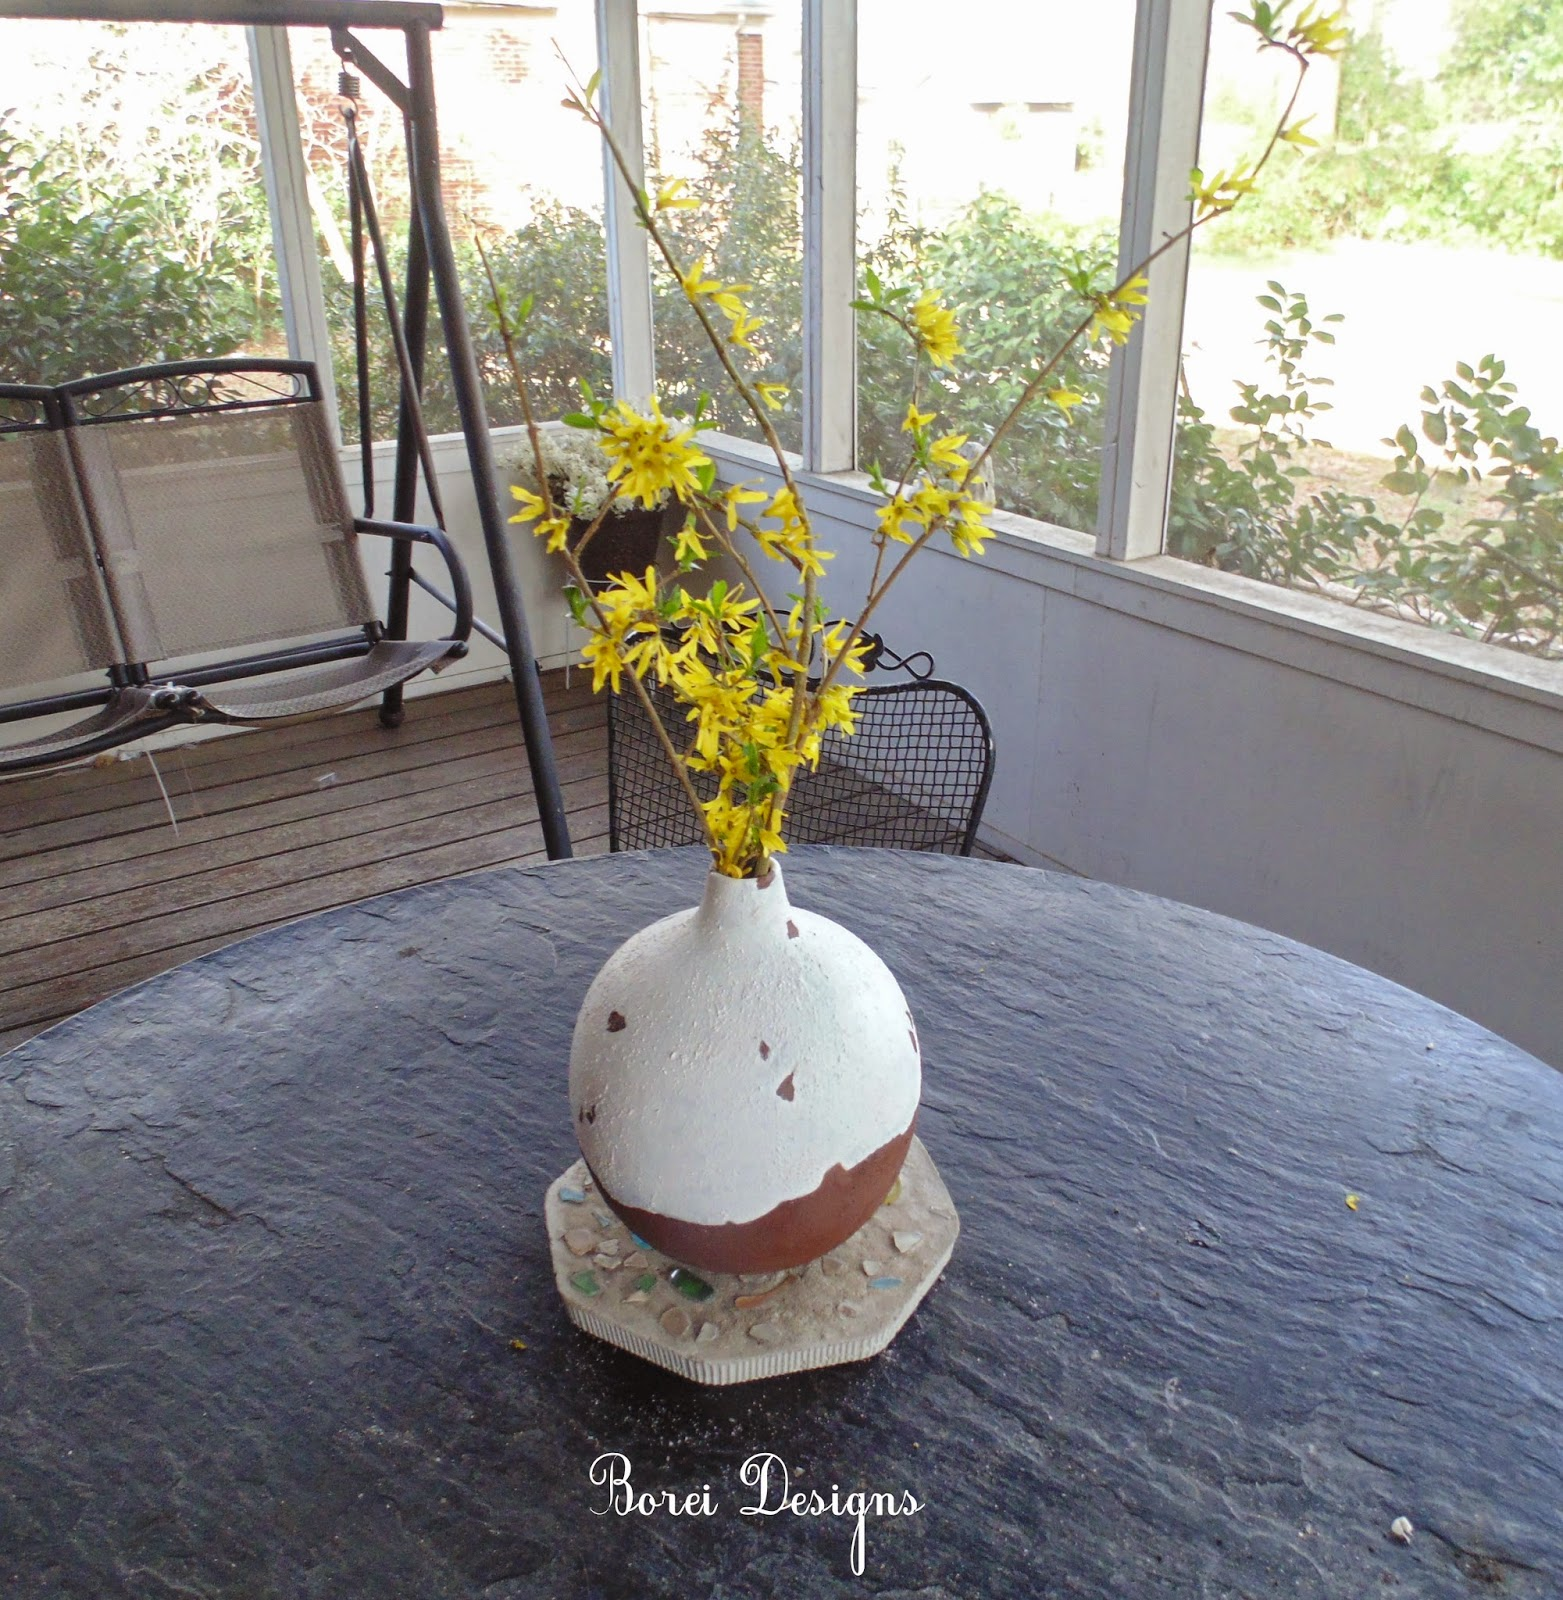 How to upcycle old ceramic containers with a tuscan urn look.